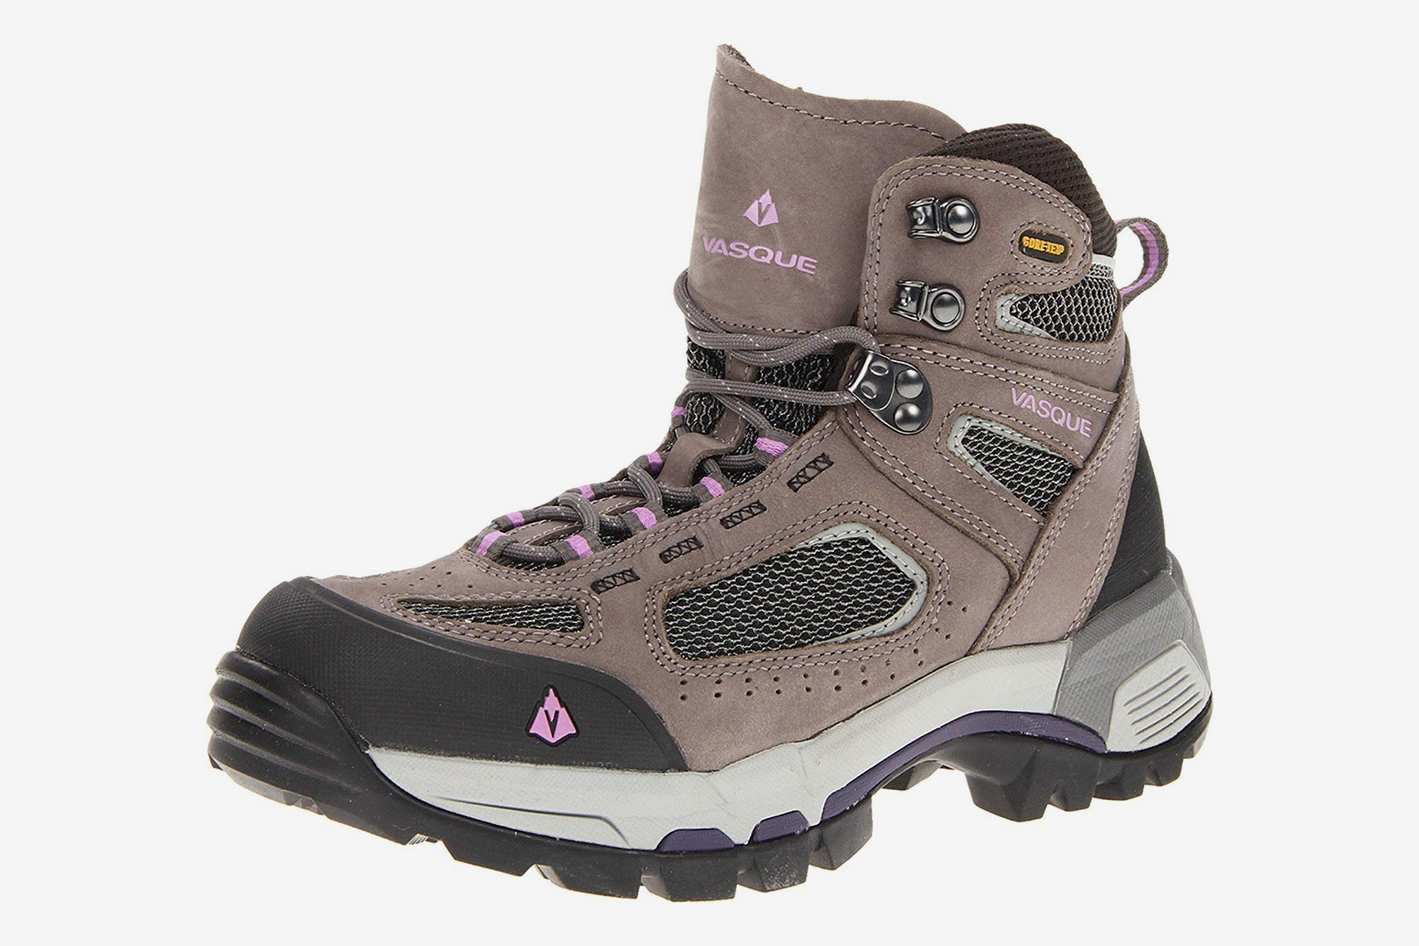 Vasque Women's Breeze 2.0 Gore-Tex Hiking Boot